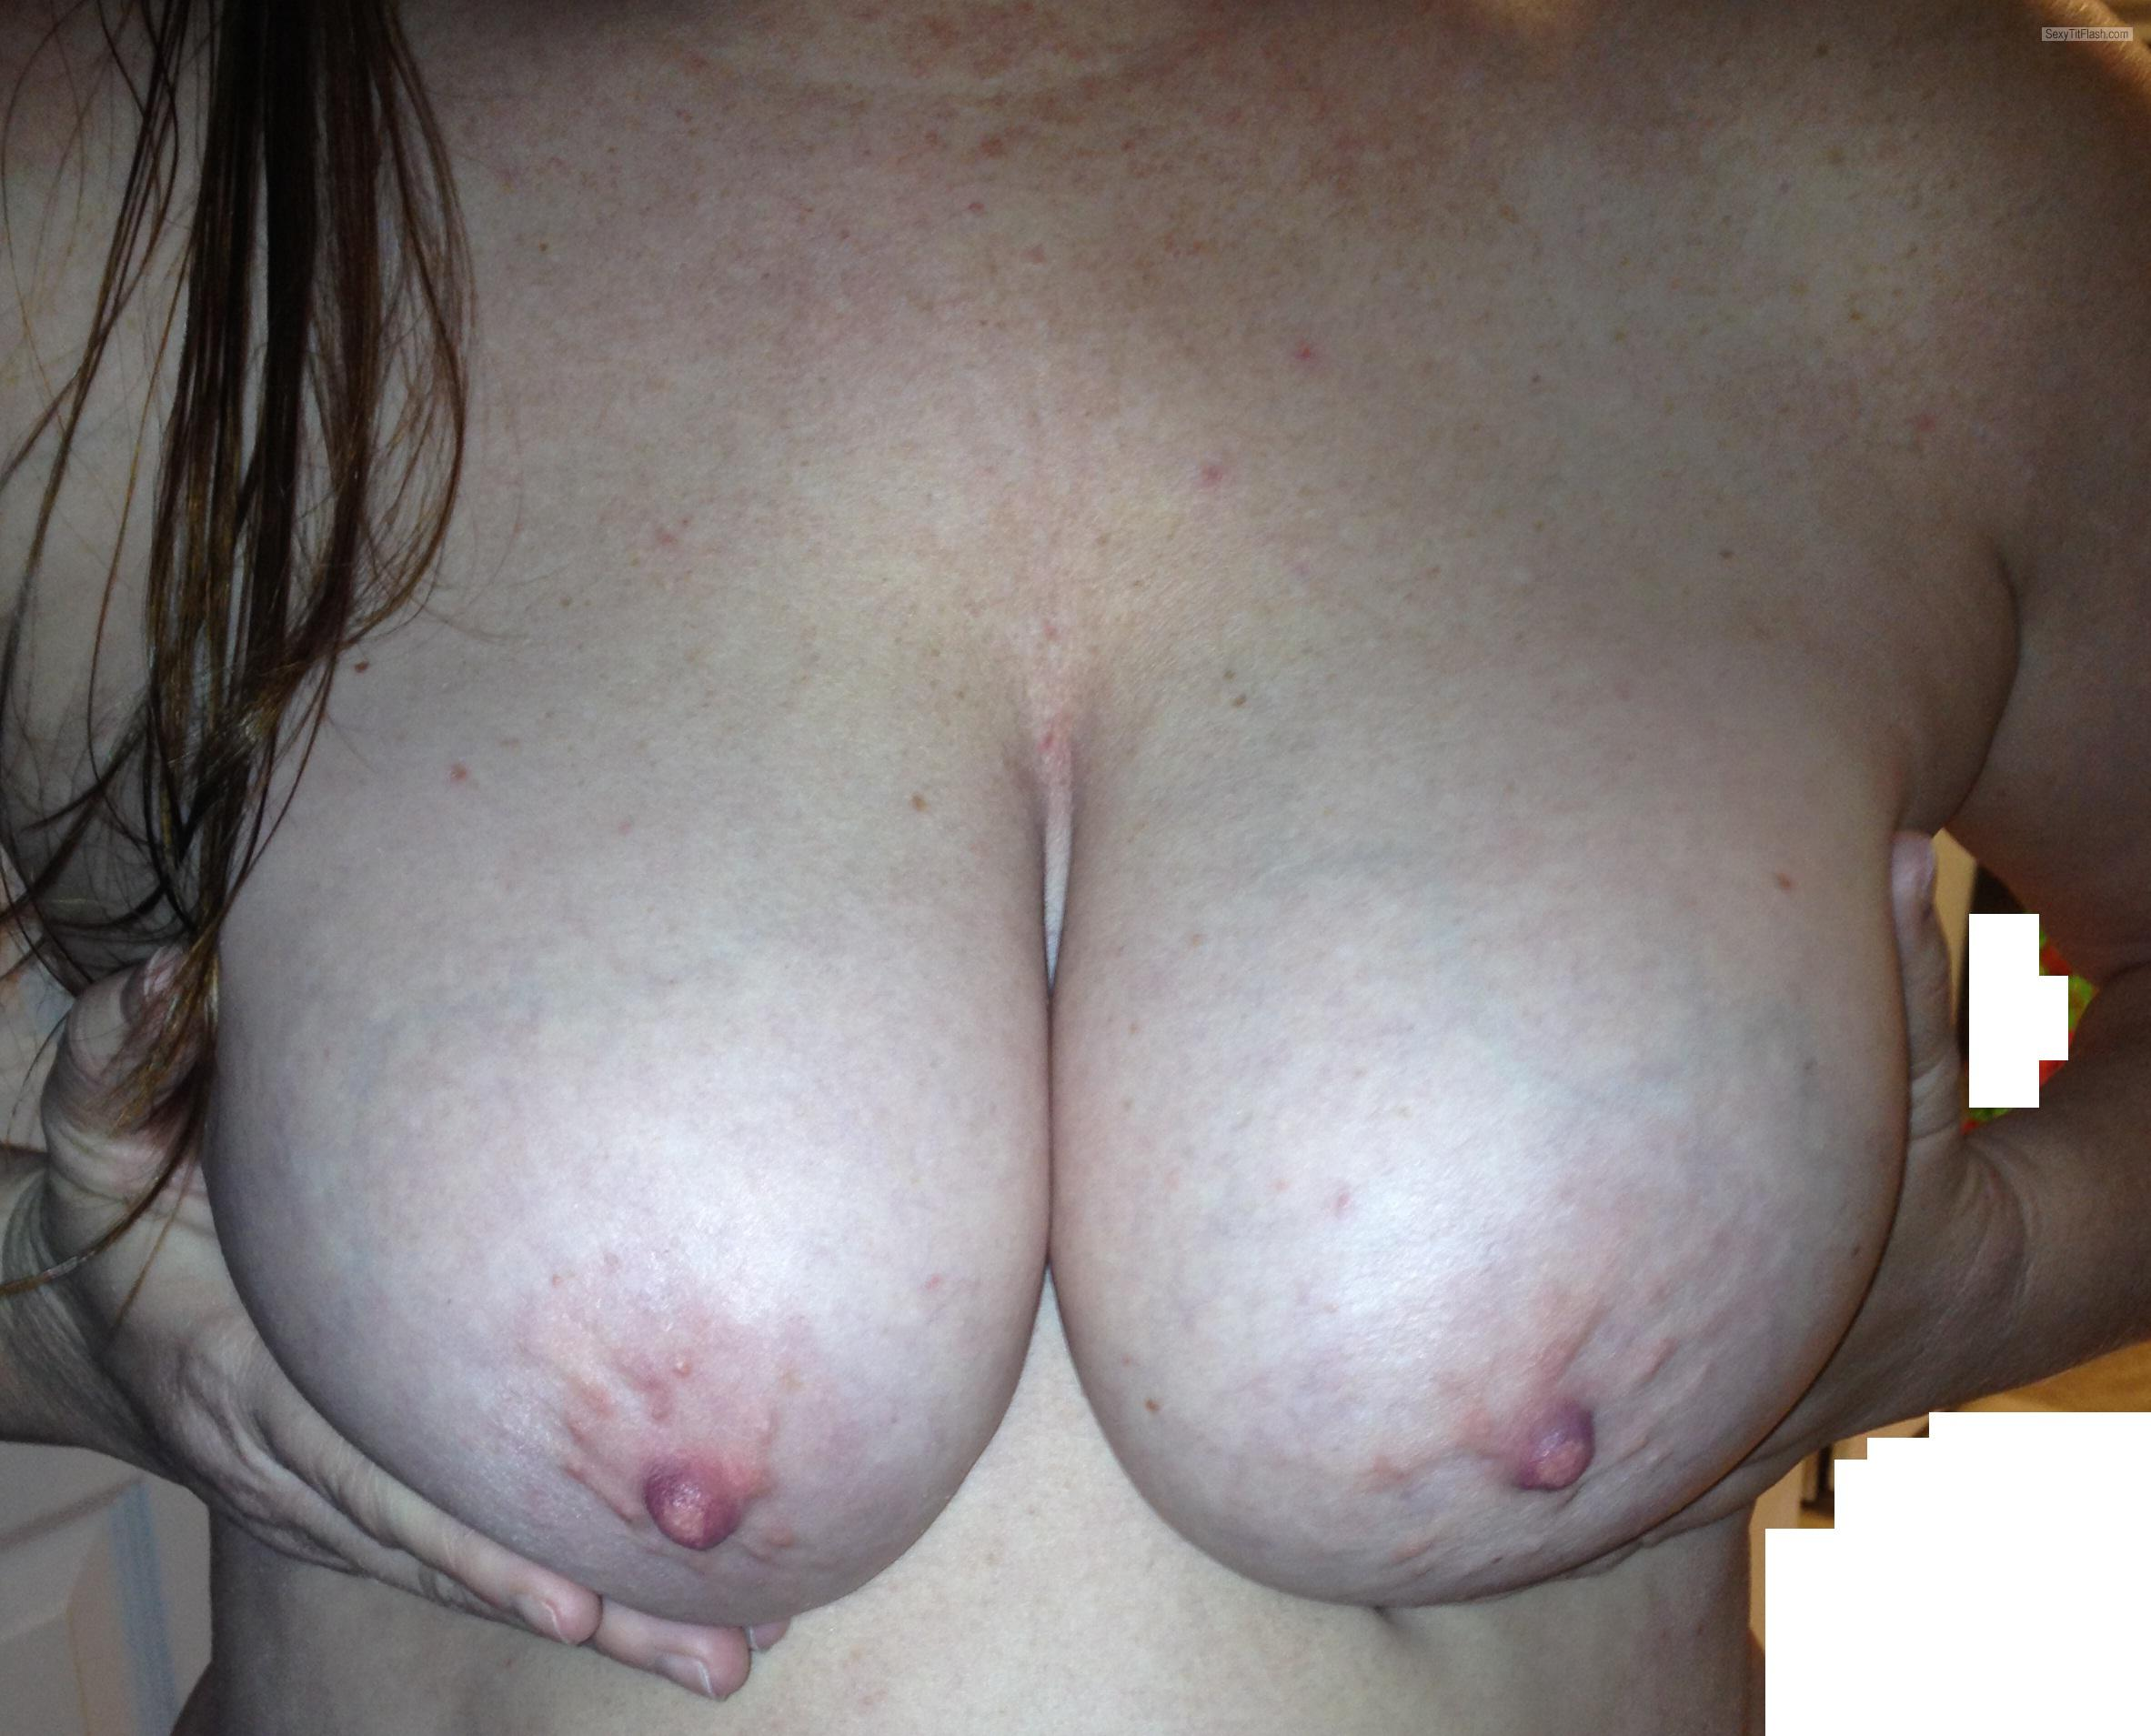 Tit Flash: Wife's Big Tits - Peek A Boos Tits from United States